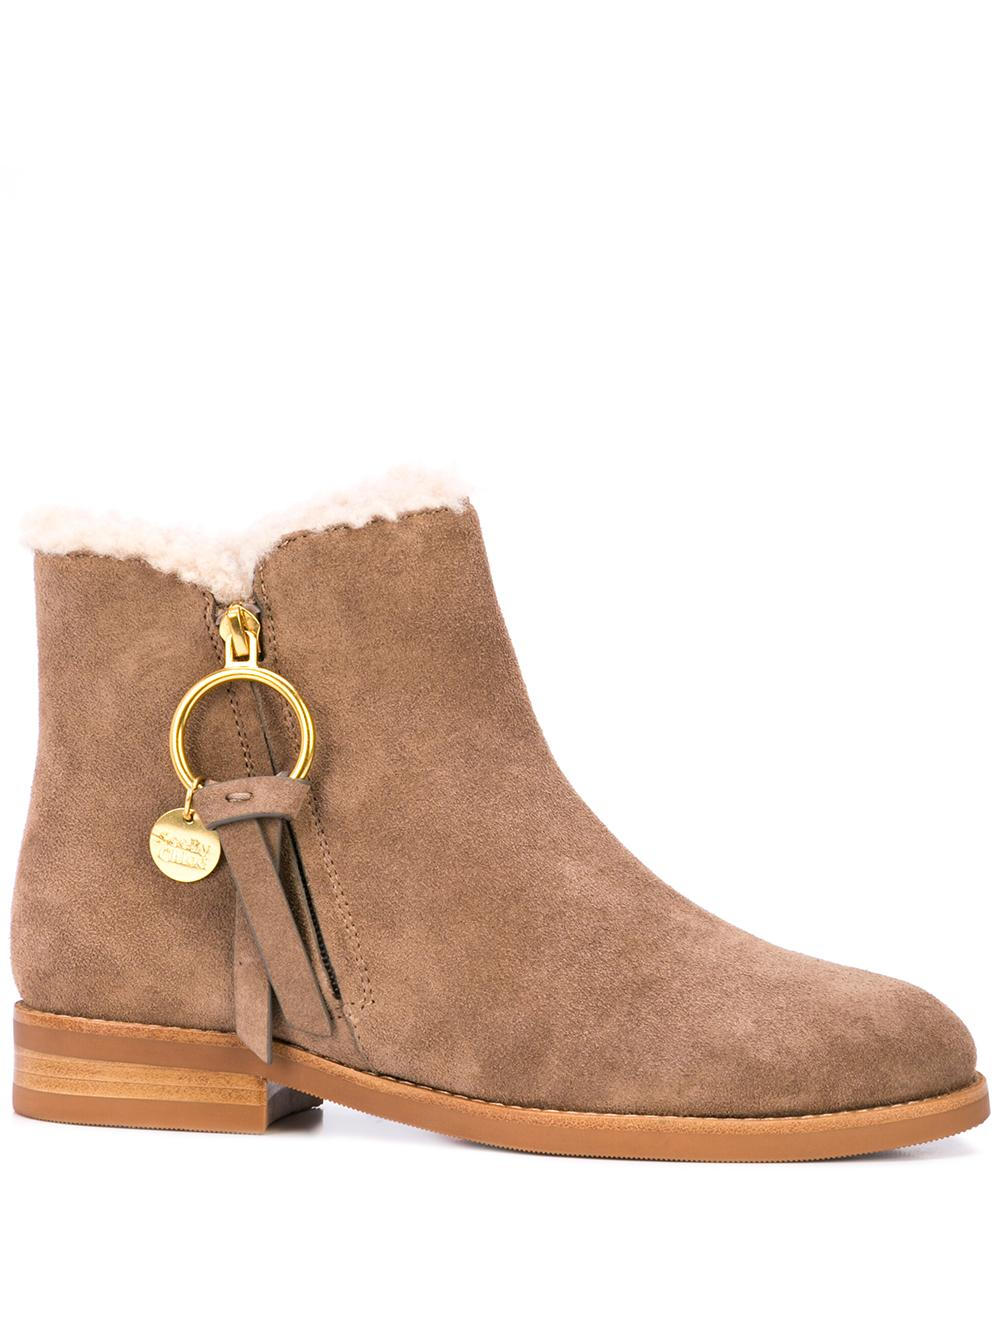 Flat Suede Bootie With Shearling Item # SB33110B